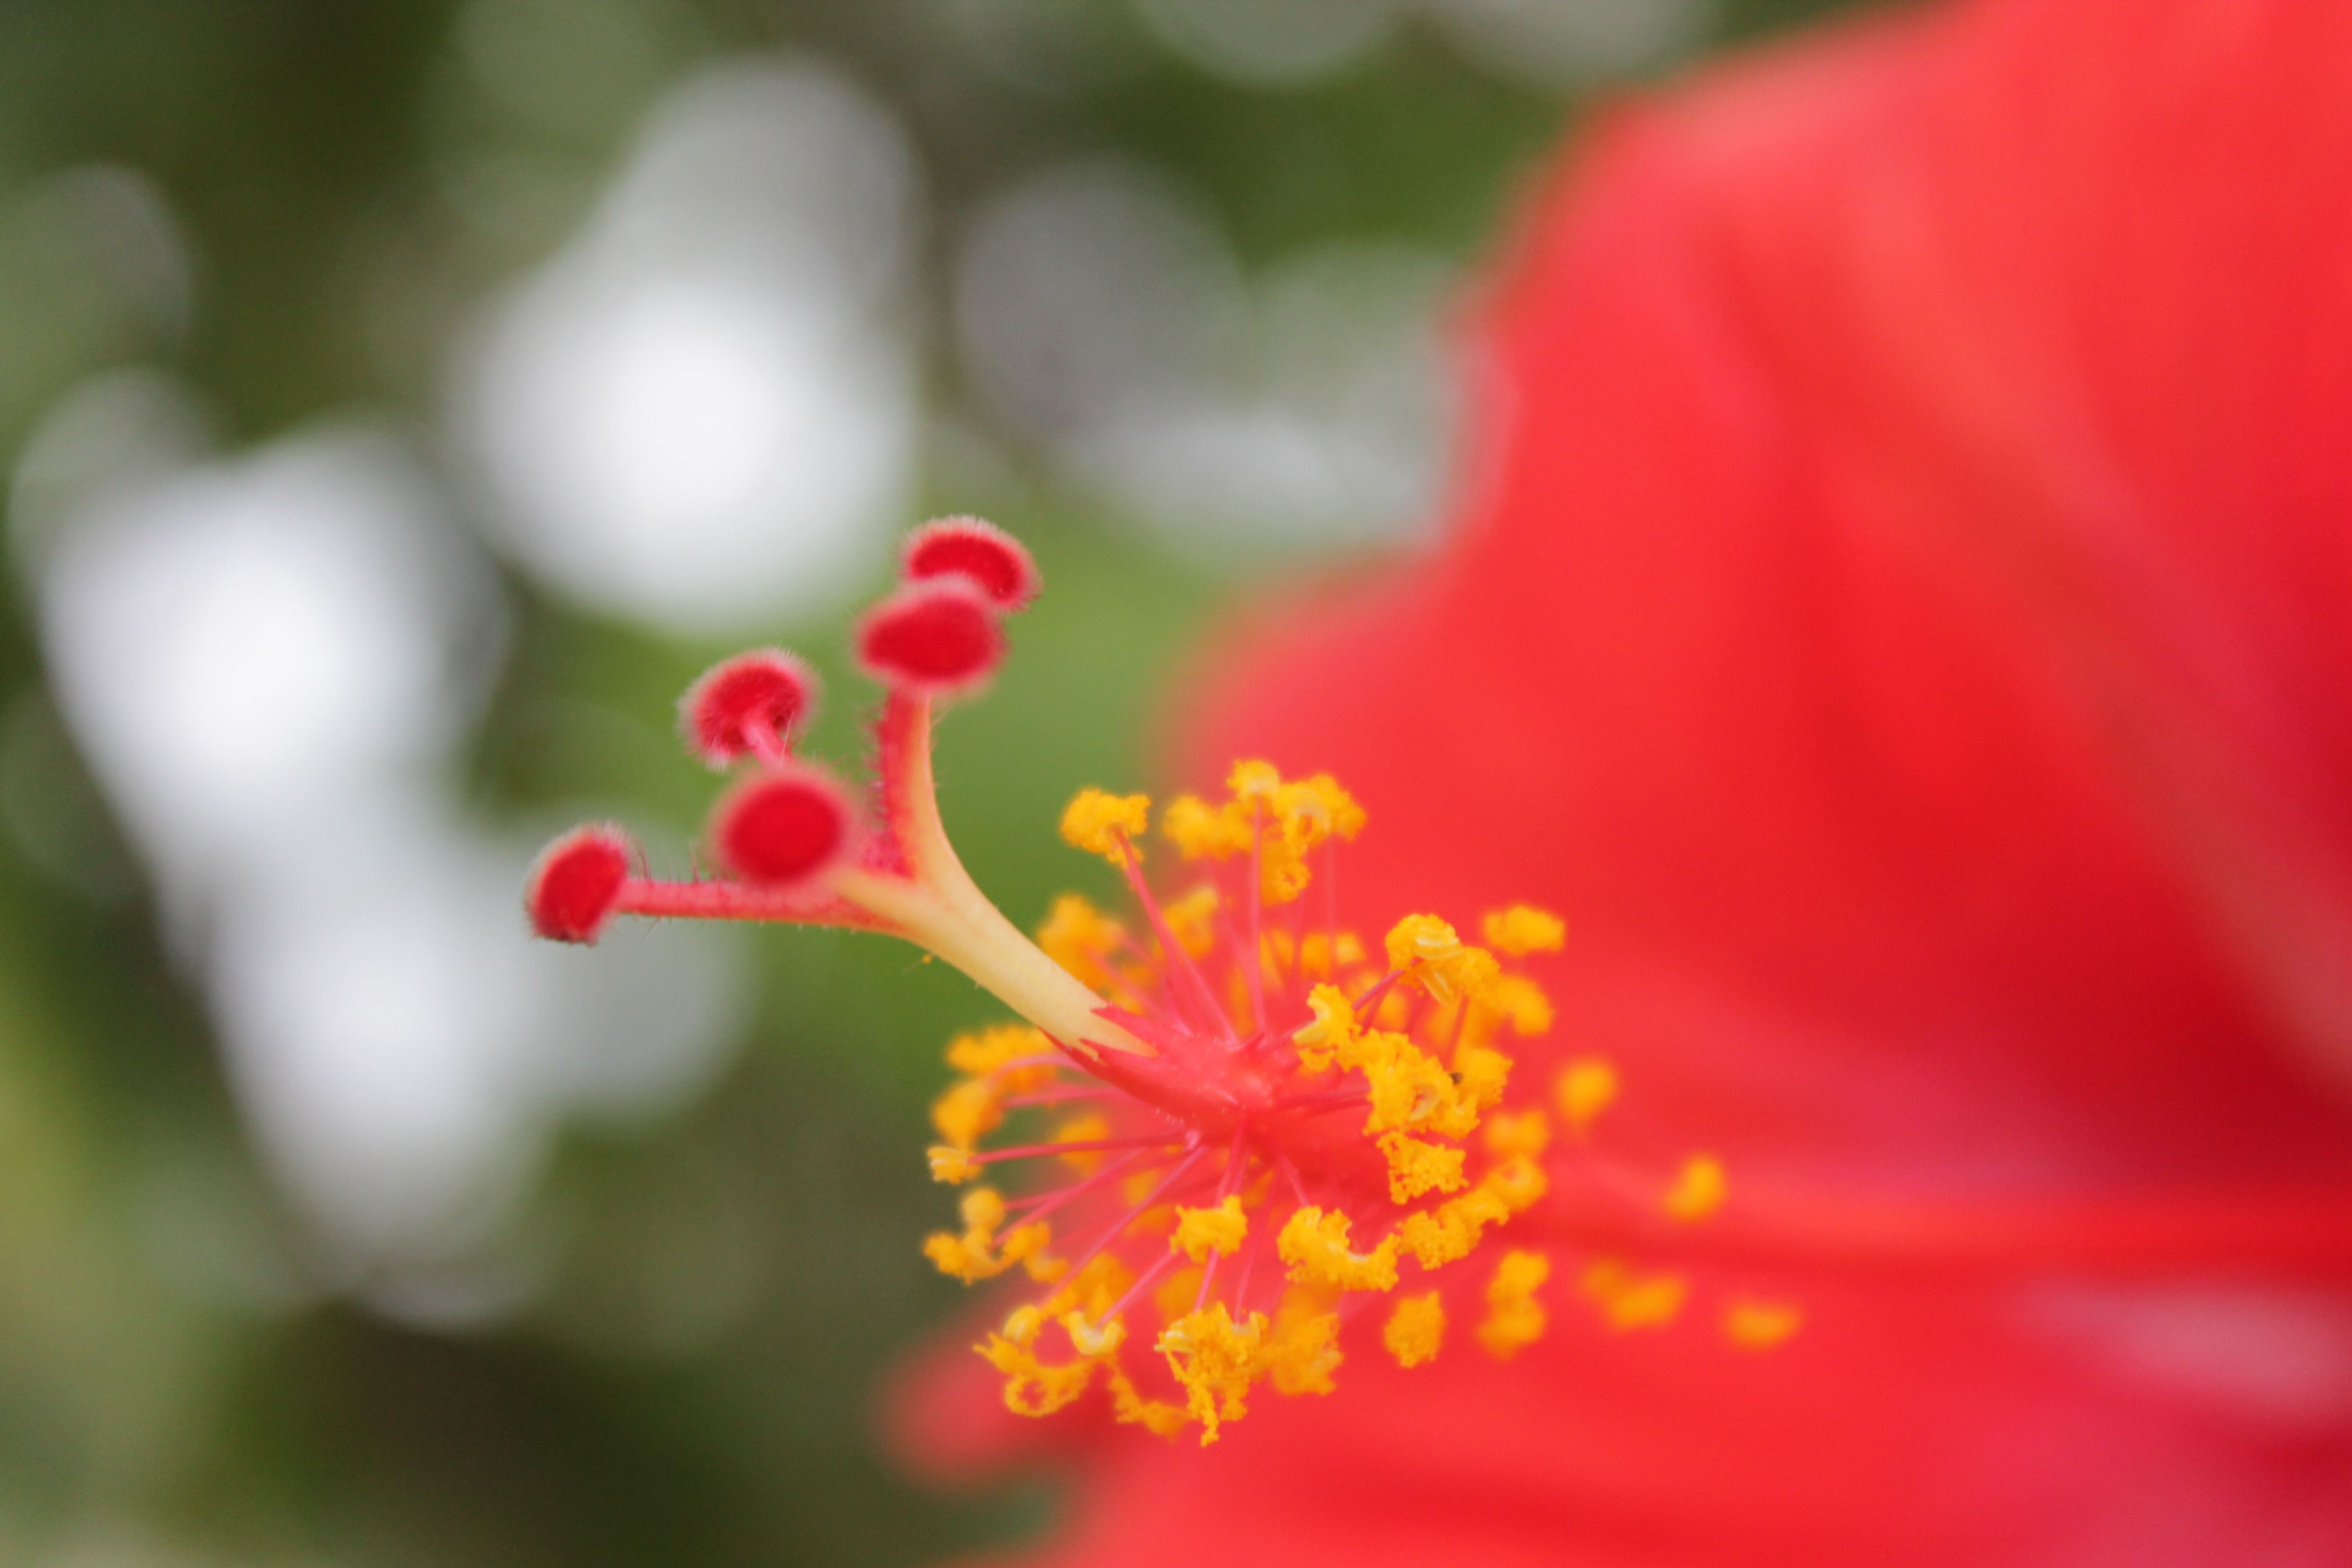 Check Out The Hibiscus Flowers Pollen Grains Taken By Me